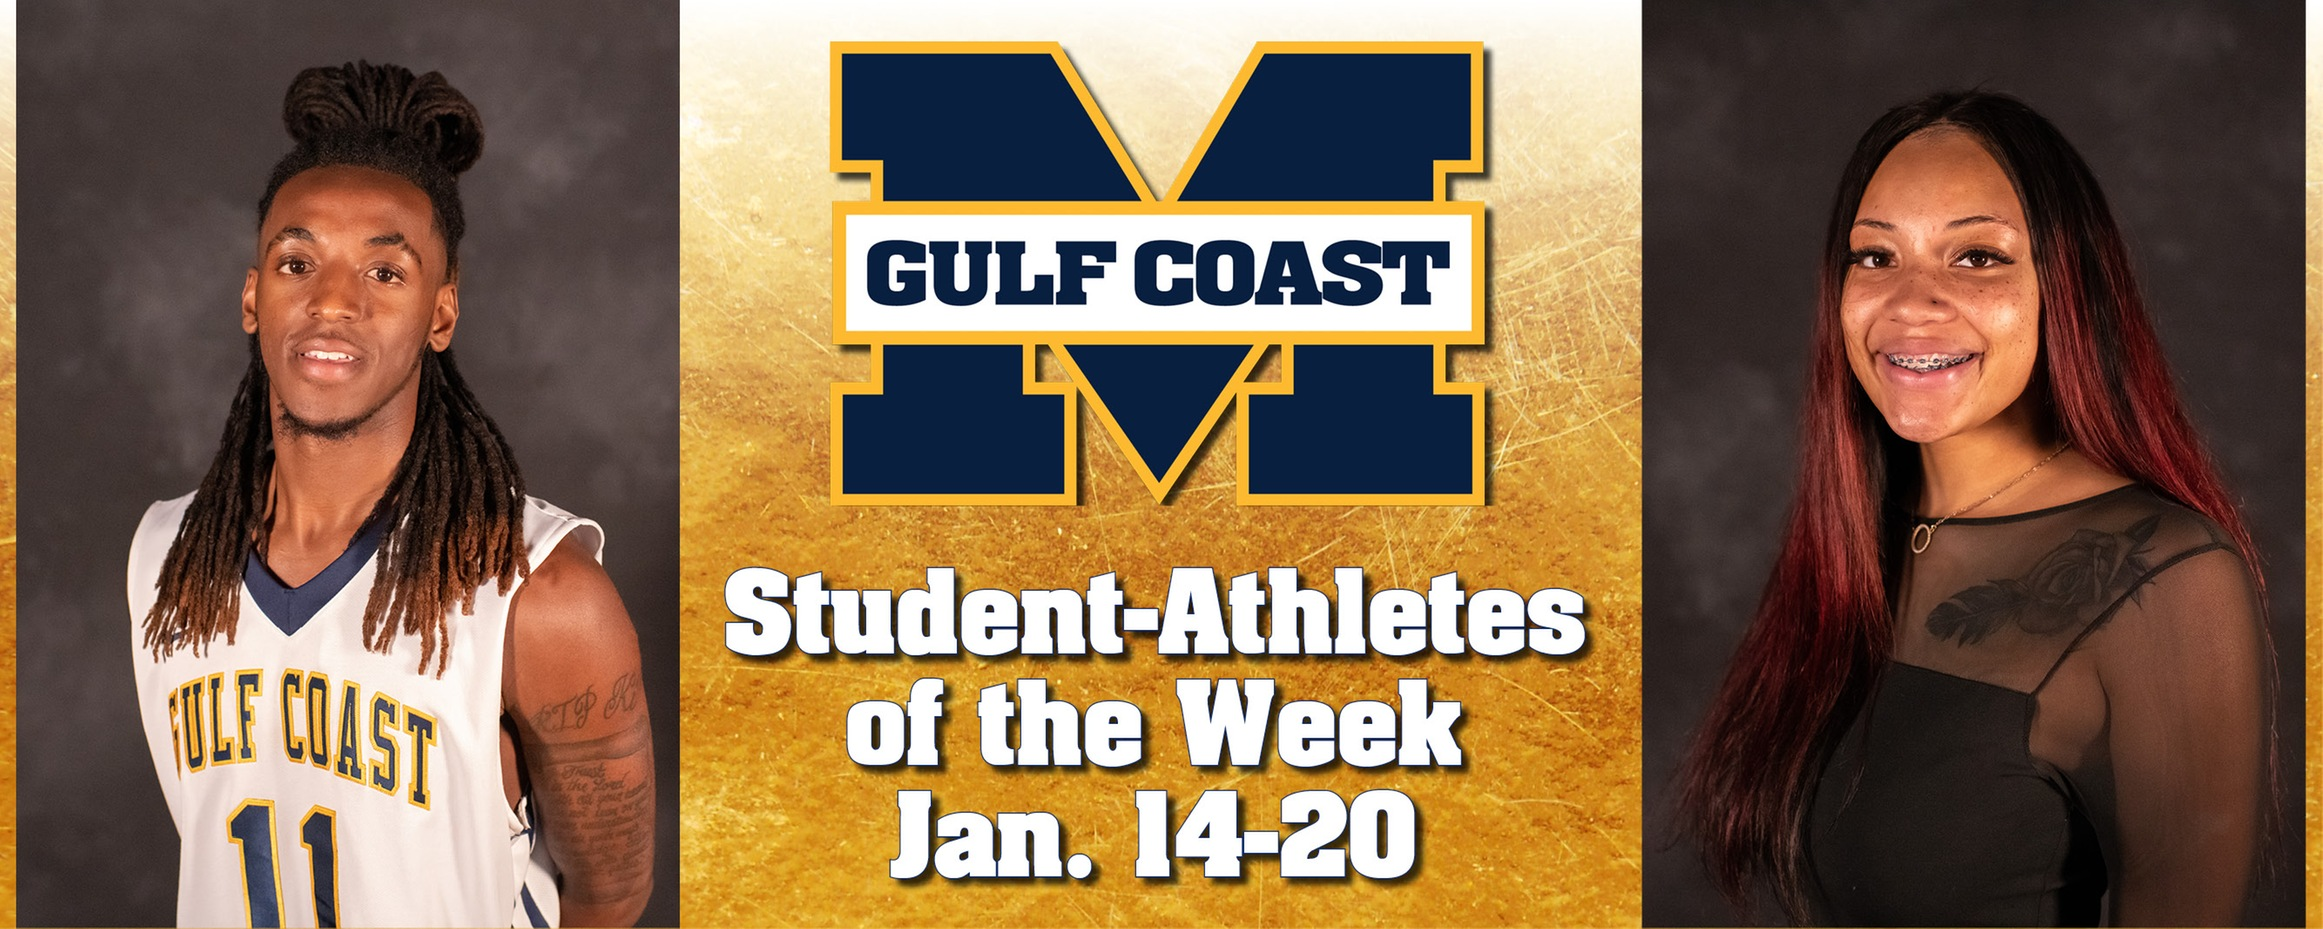 Spivery, White named MGCCC Student-Athletes of the Week